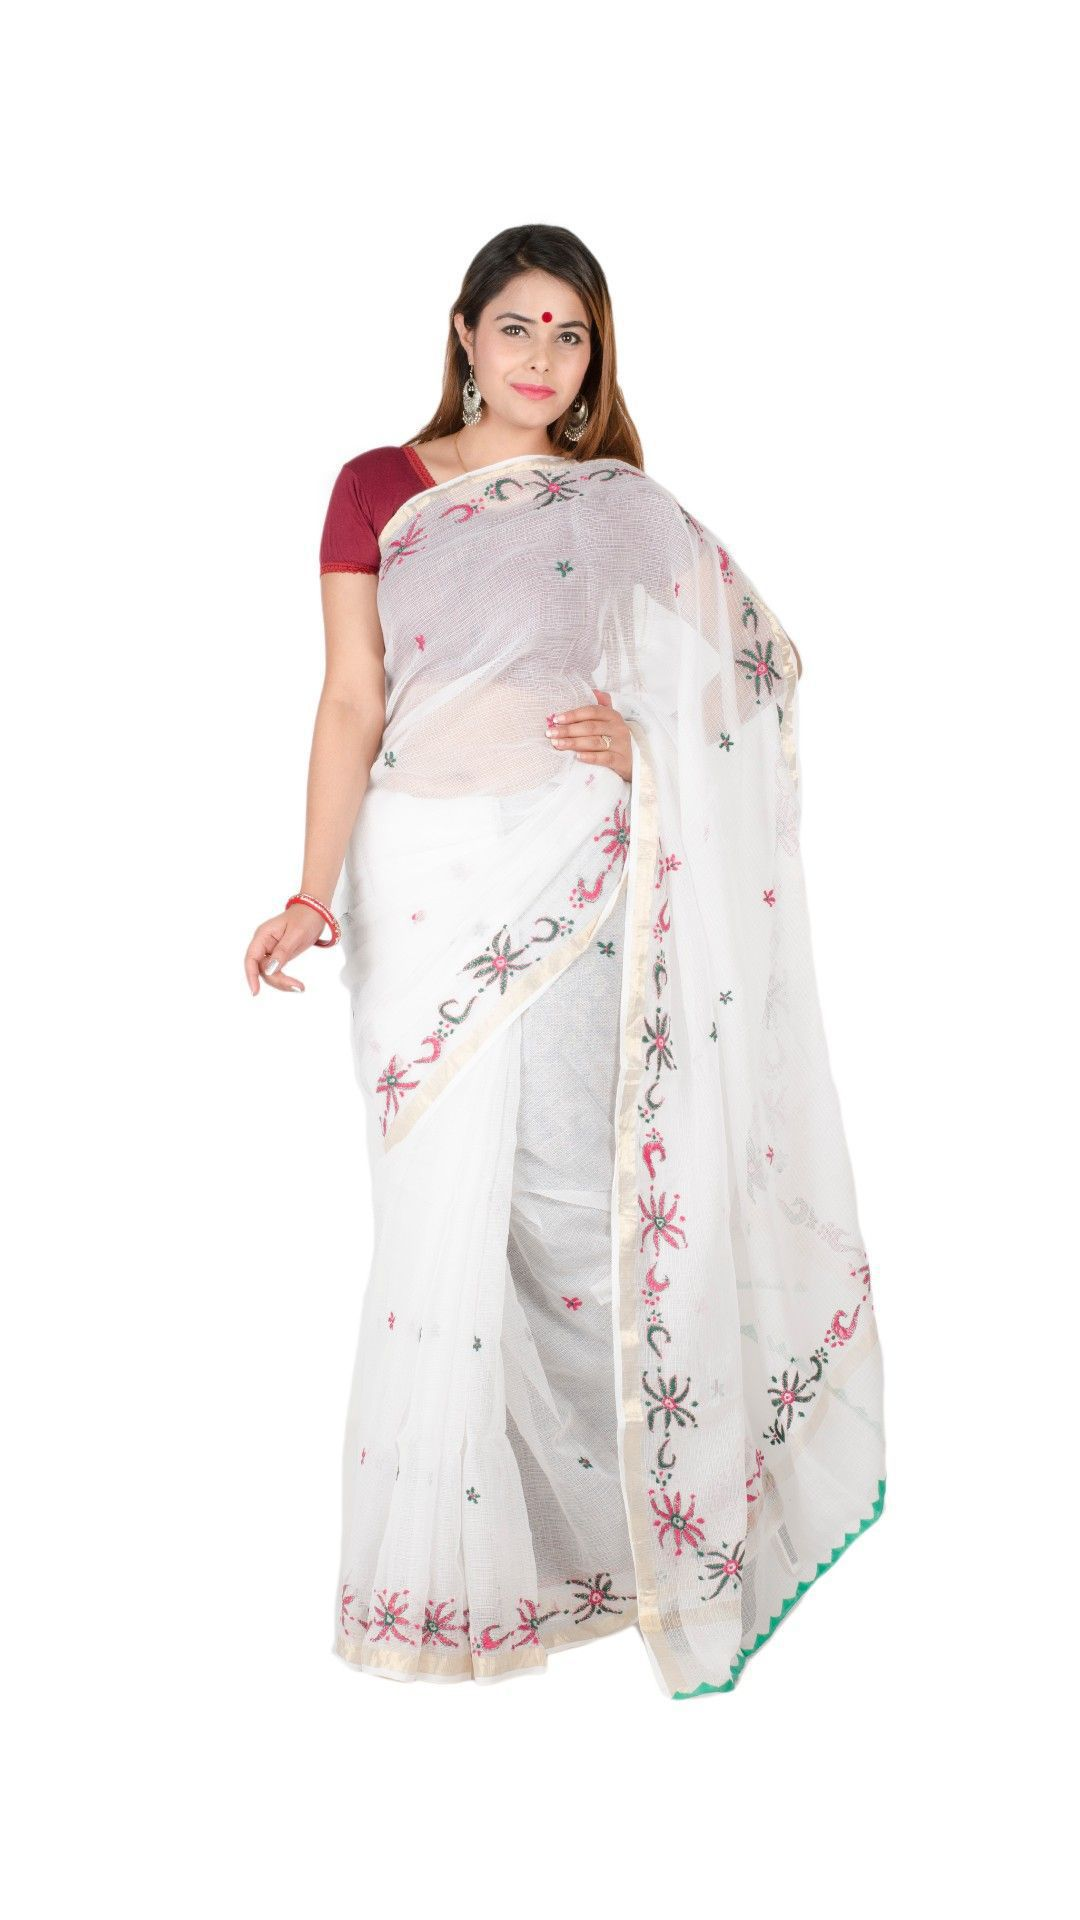 7fb6b2e280 Tribes India White and Grey Cotton Saree - Buy Tribes India White and Grey  Cotton Saree Online at Low Price - Snapdeal.com